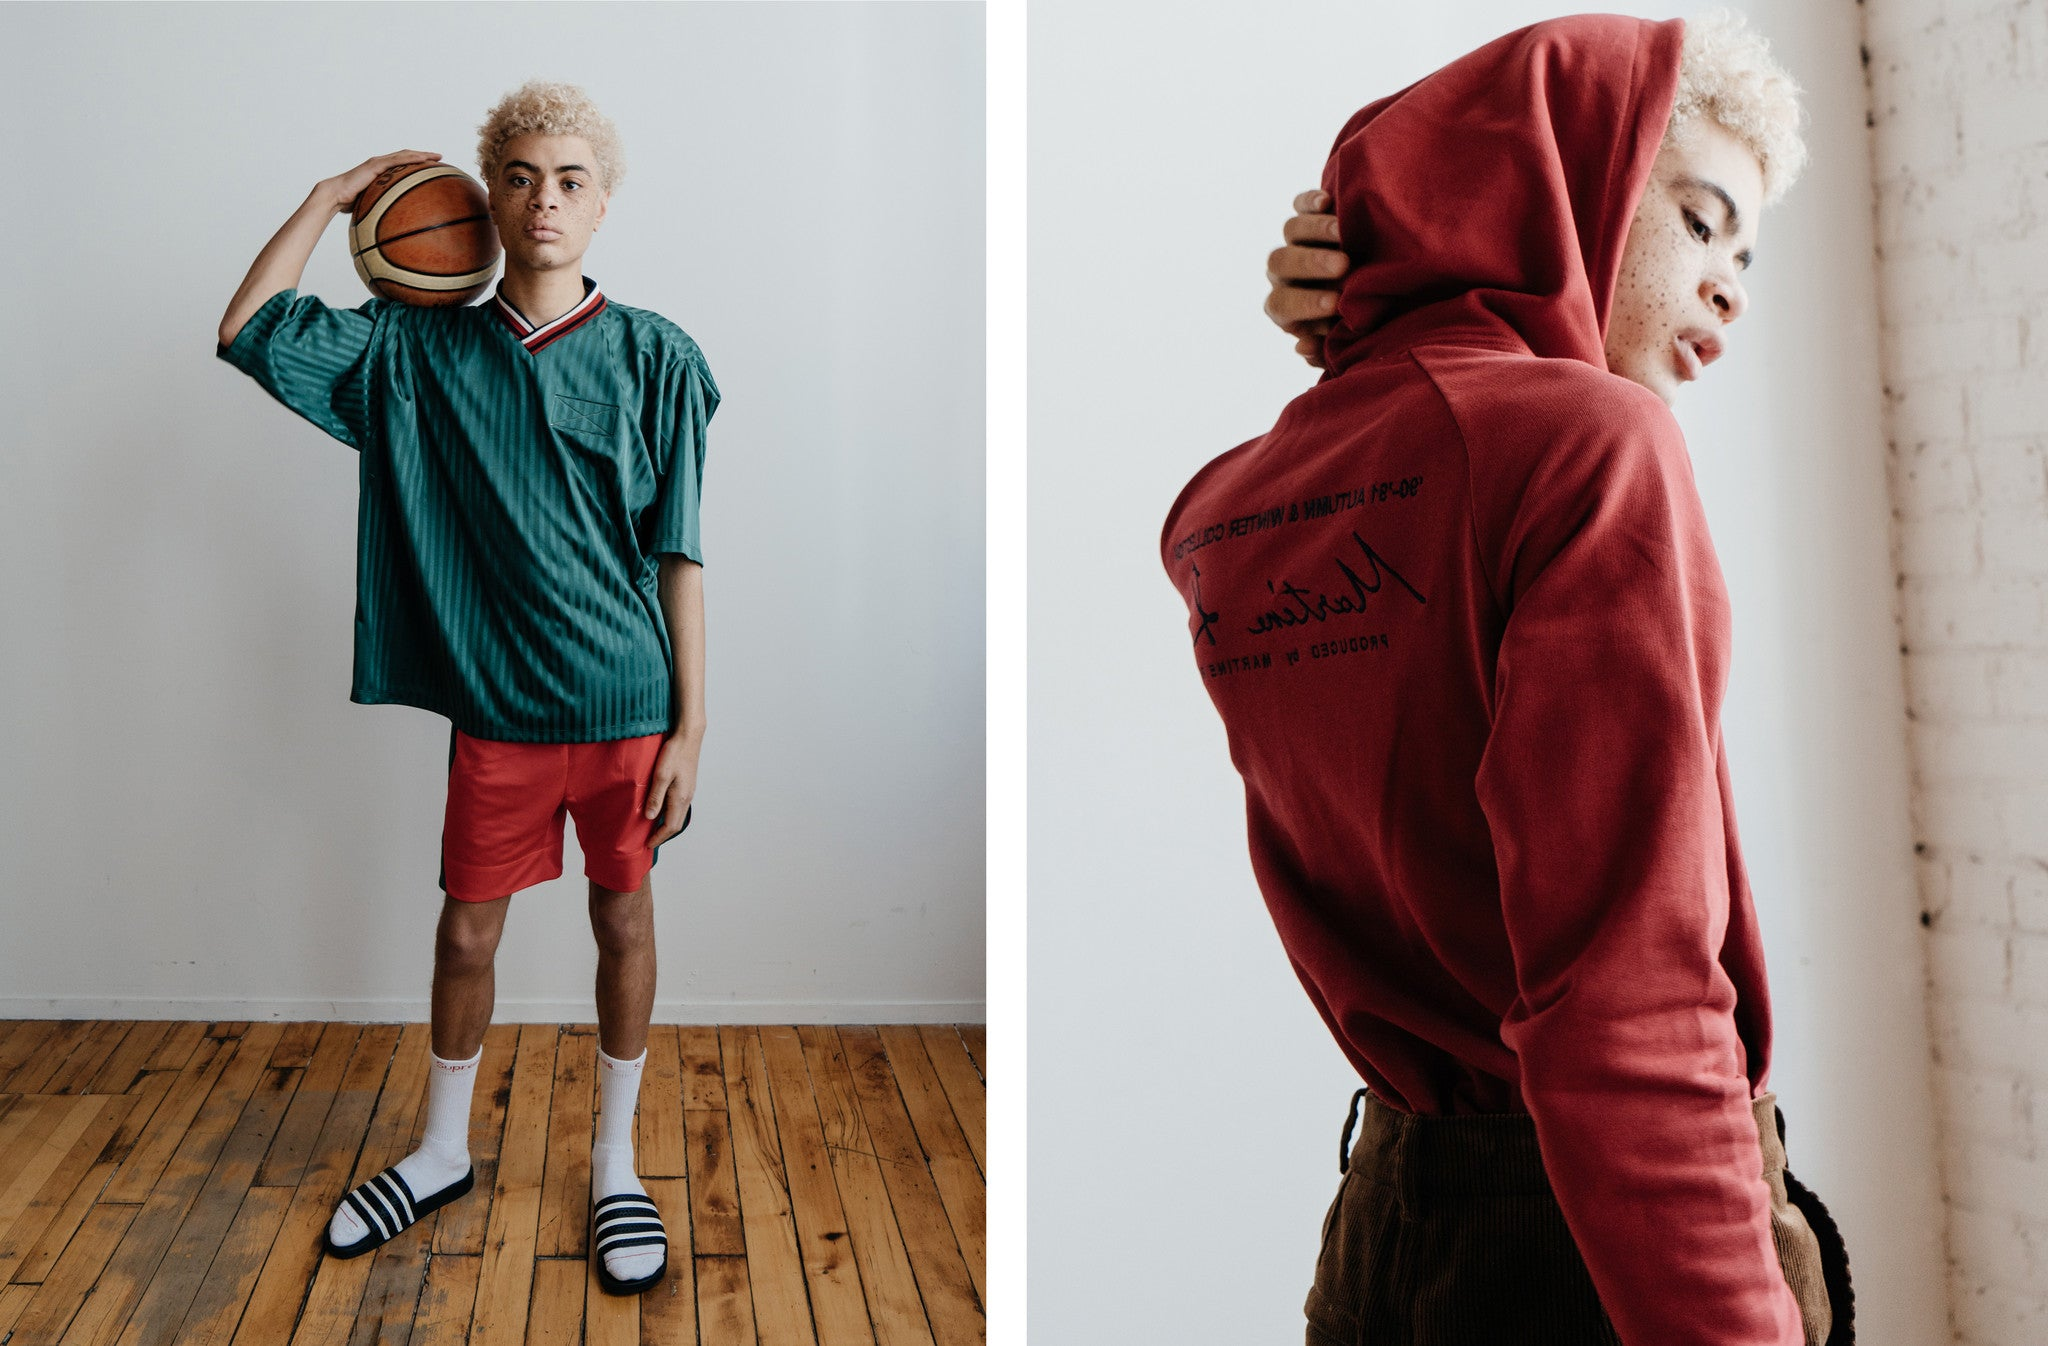 Martine Rose SS'17 - Sports Top in Green Stripe, Long Sport Shorts in Red/Green & Classic Hoody in Red